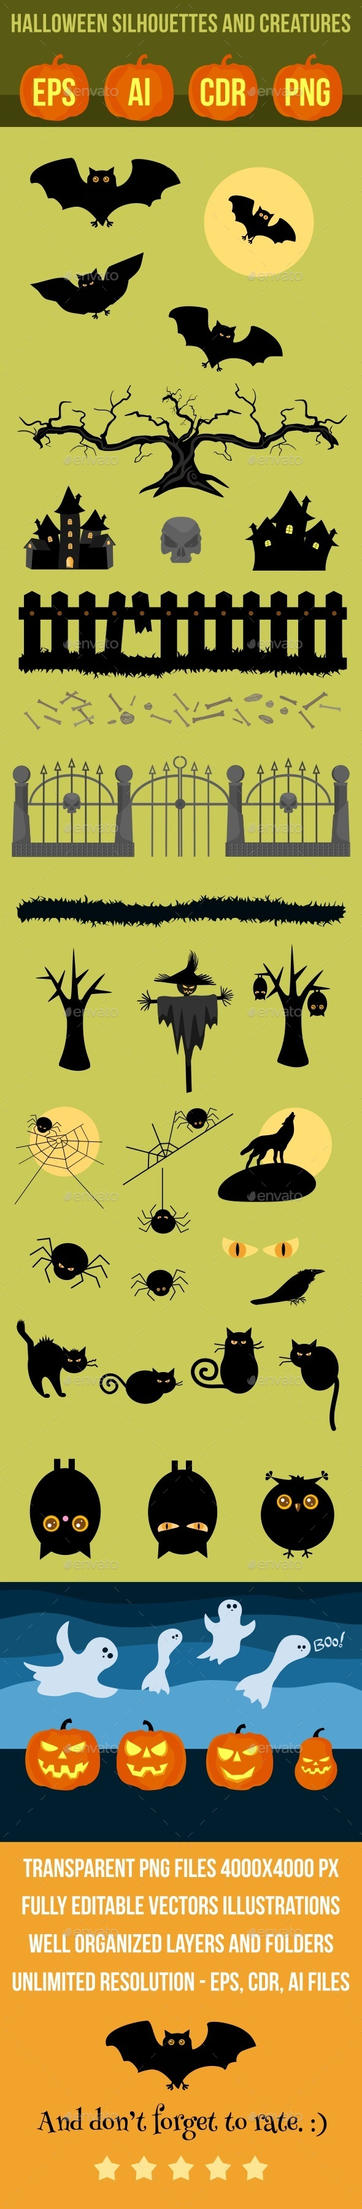 Halloween silhouettes and creatures by petyaivanova